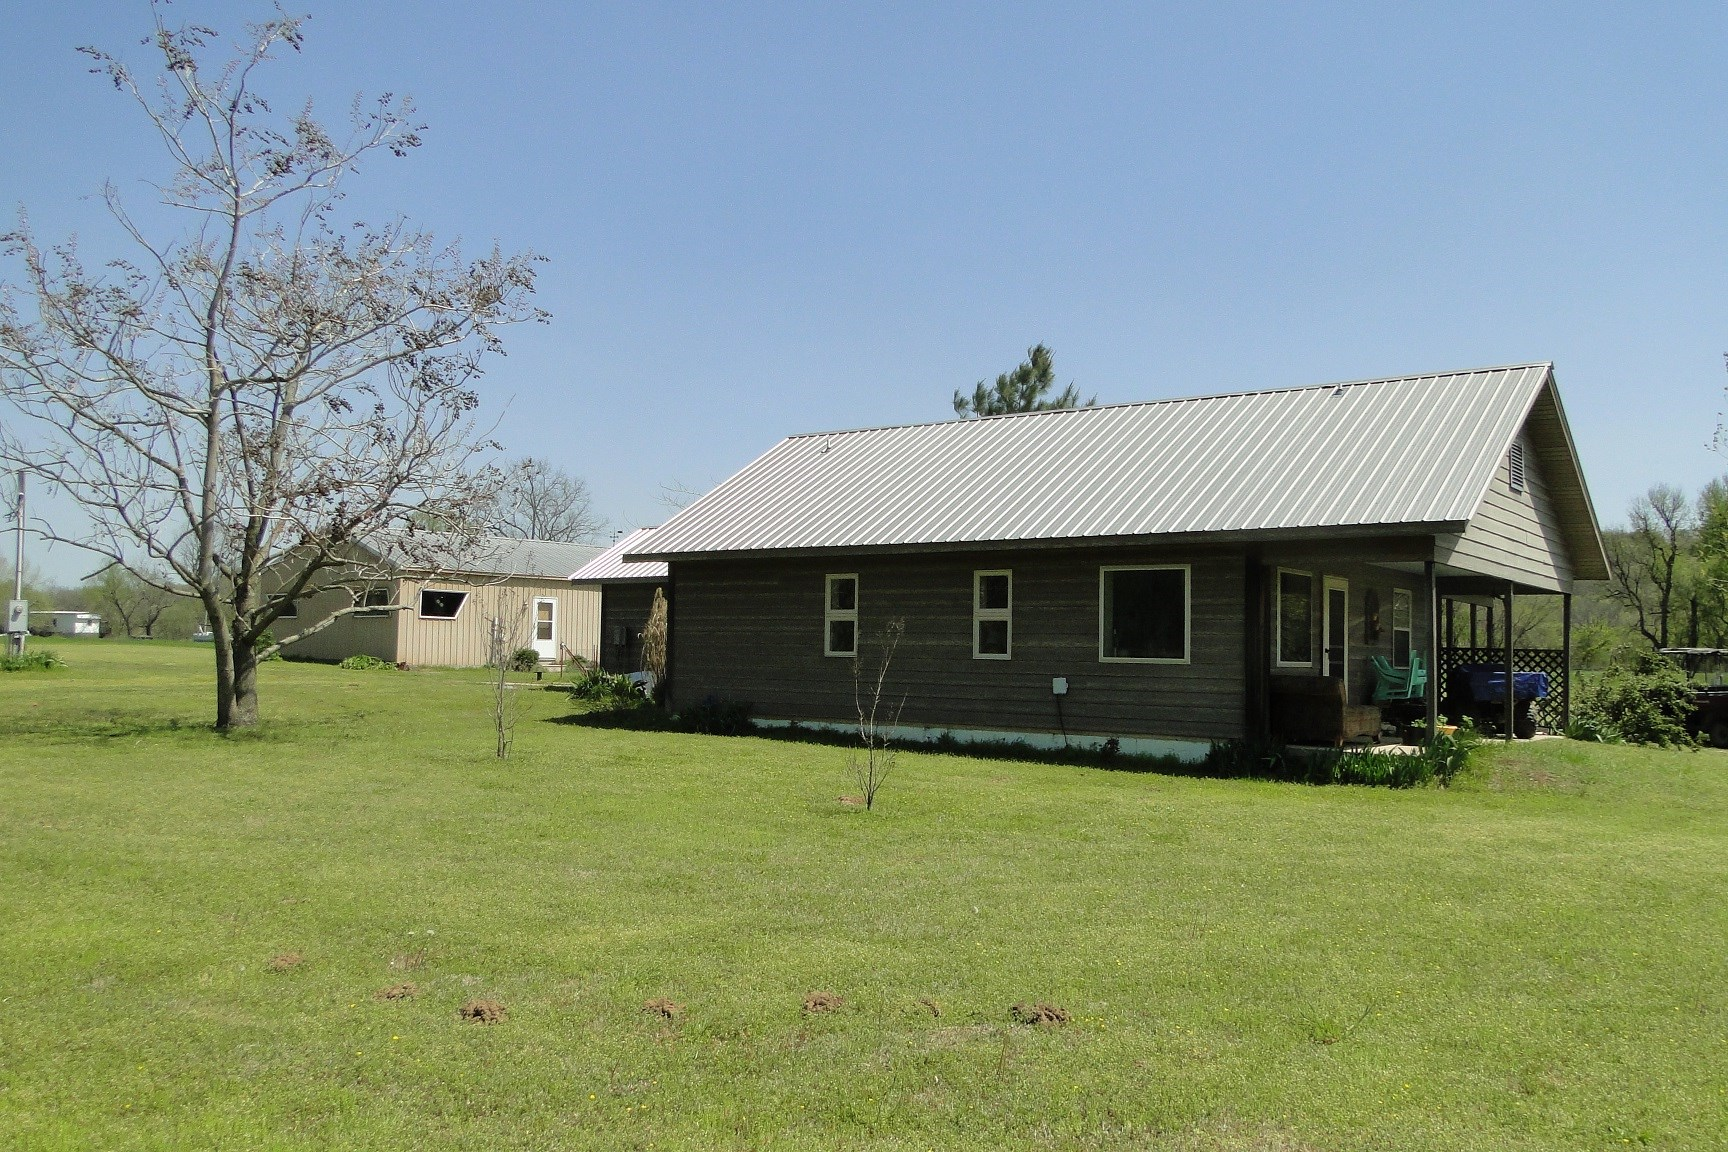 HOME WITH ACREAGE FOR SALE ON WHITE RIVER IN ARKANSAS